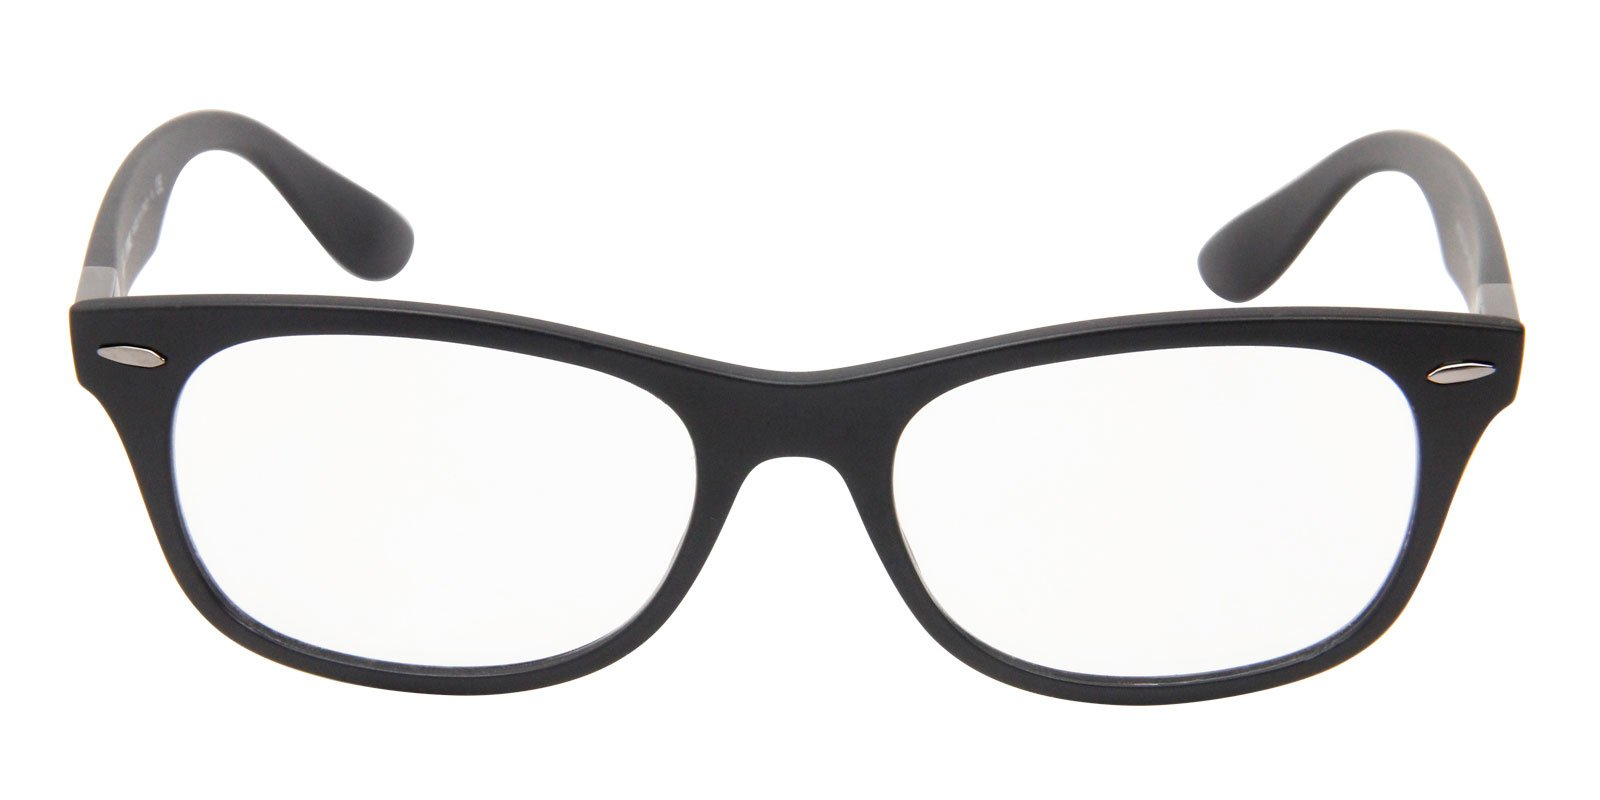 Ray Ban Rx - RX7032 Black Oval Men, Women Eyeglasses - 52mm-Eyeglasses-Designer Eyes